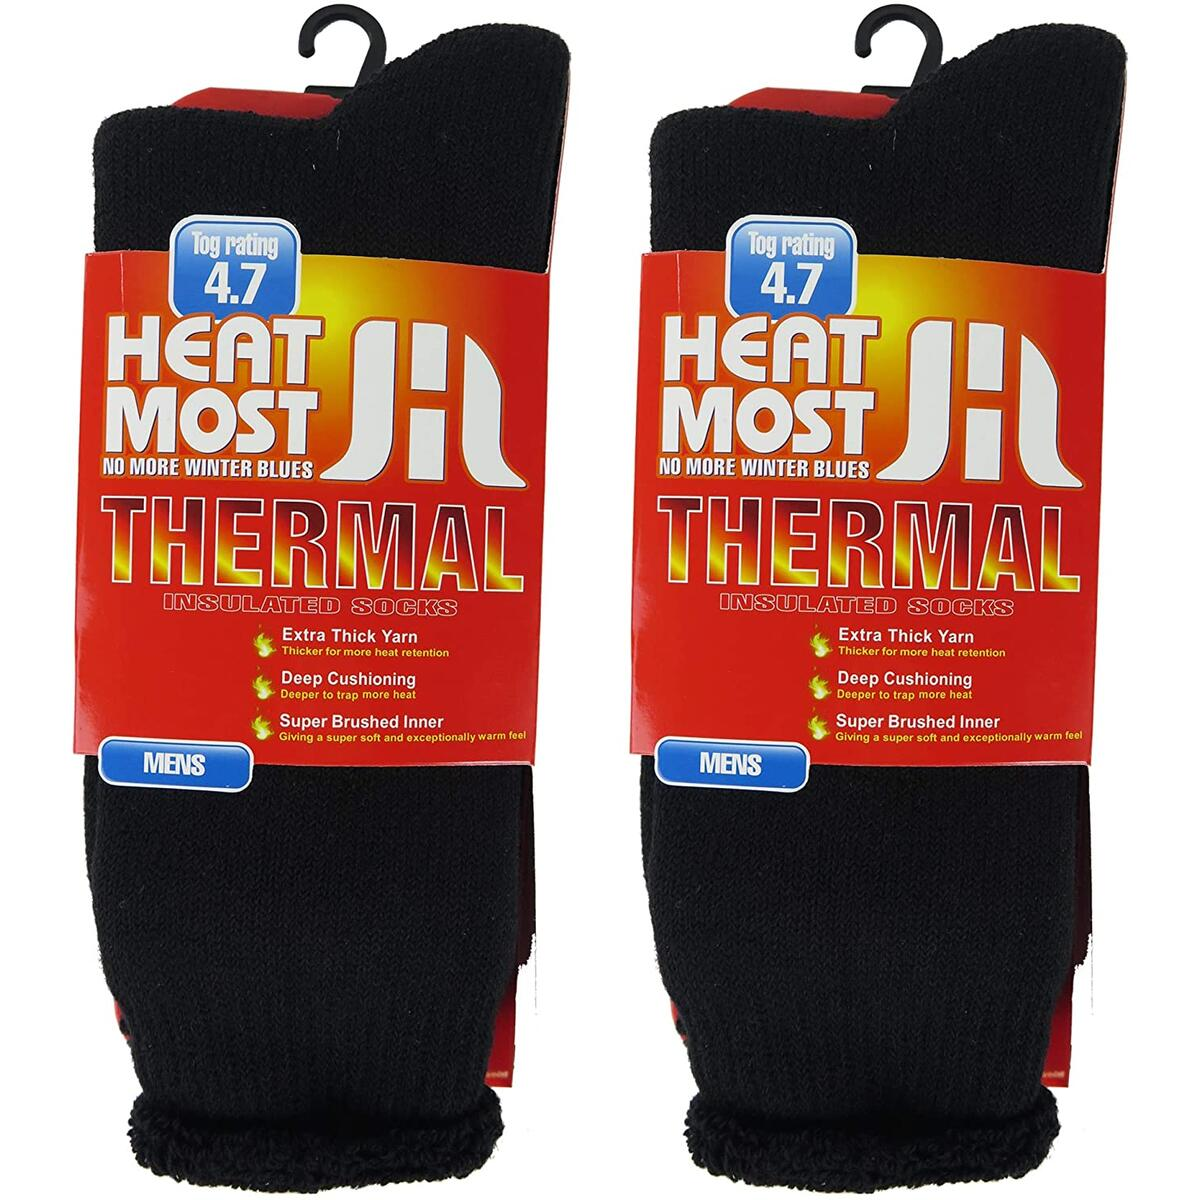 Thermal Socks For Men and Women Insulated Winter Socks for Extreme Cold Weathers Debra Weitzner color Black 2 Pack